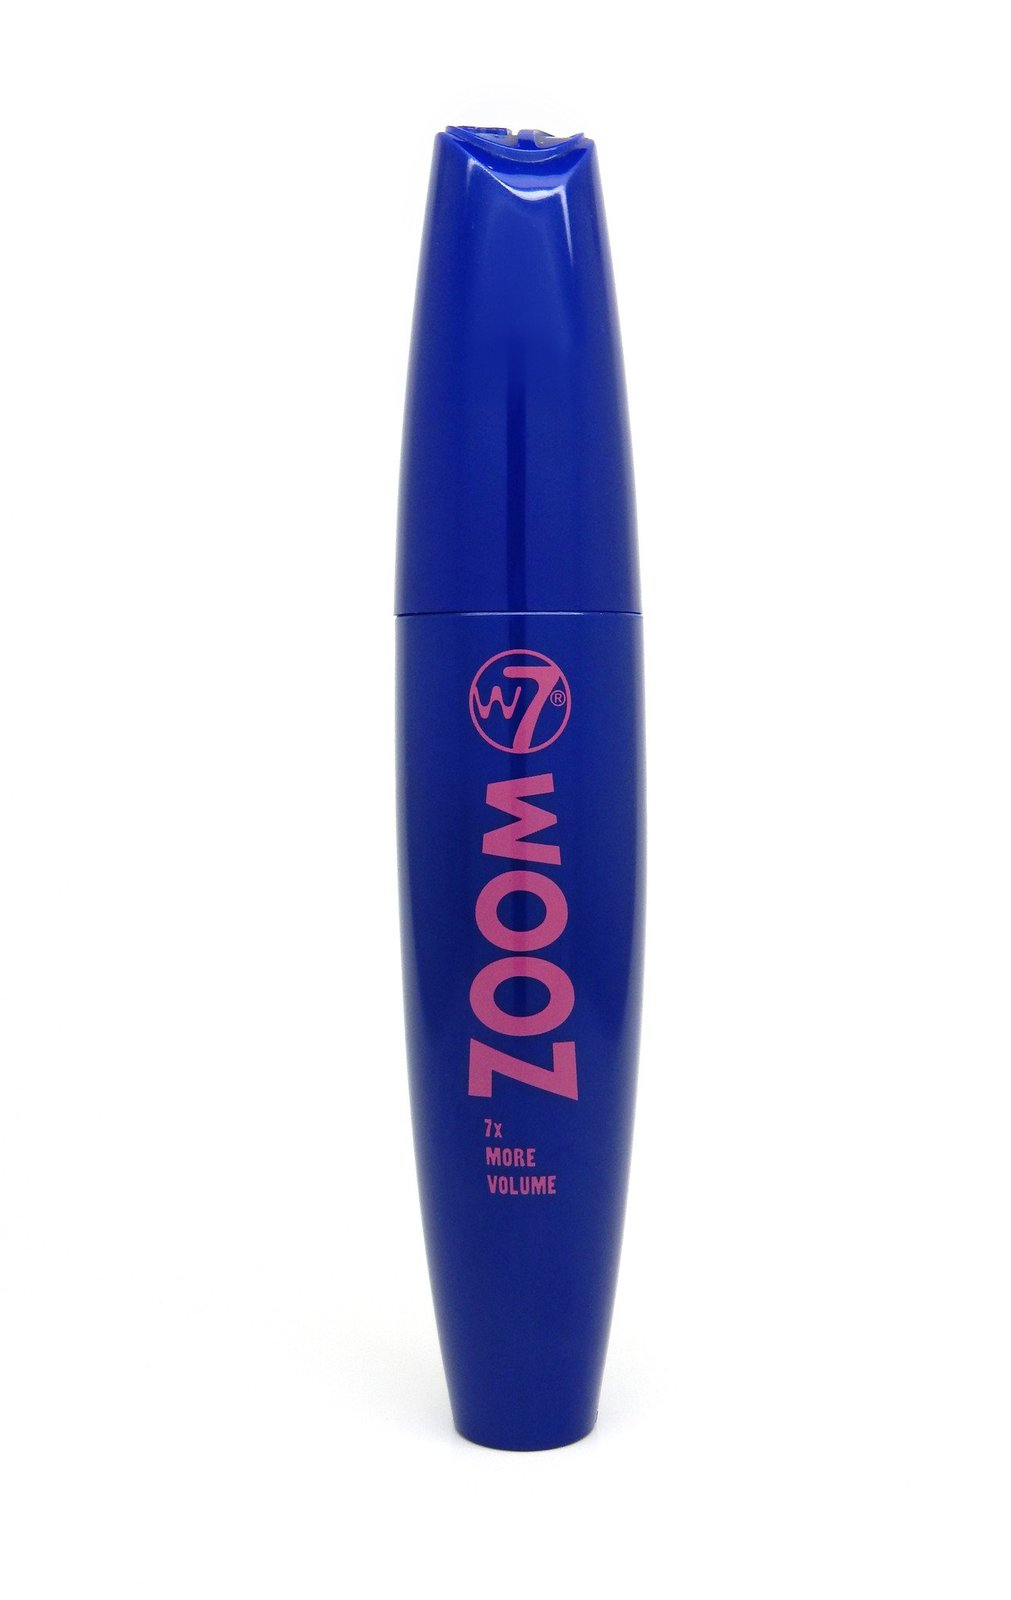 W7 Zoom Mascara (Black) image